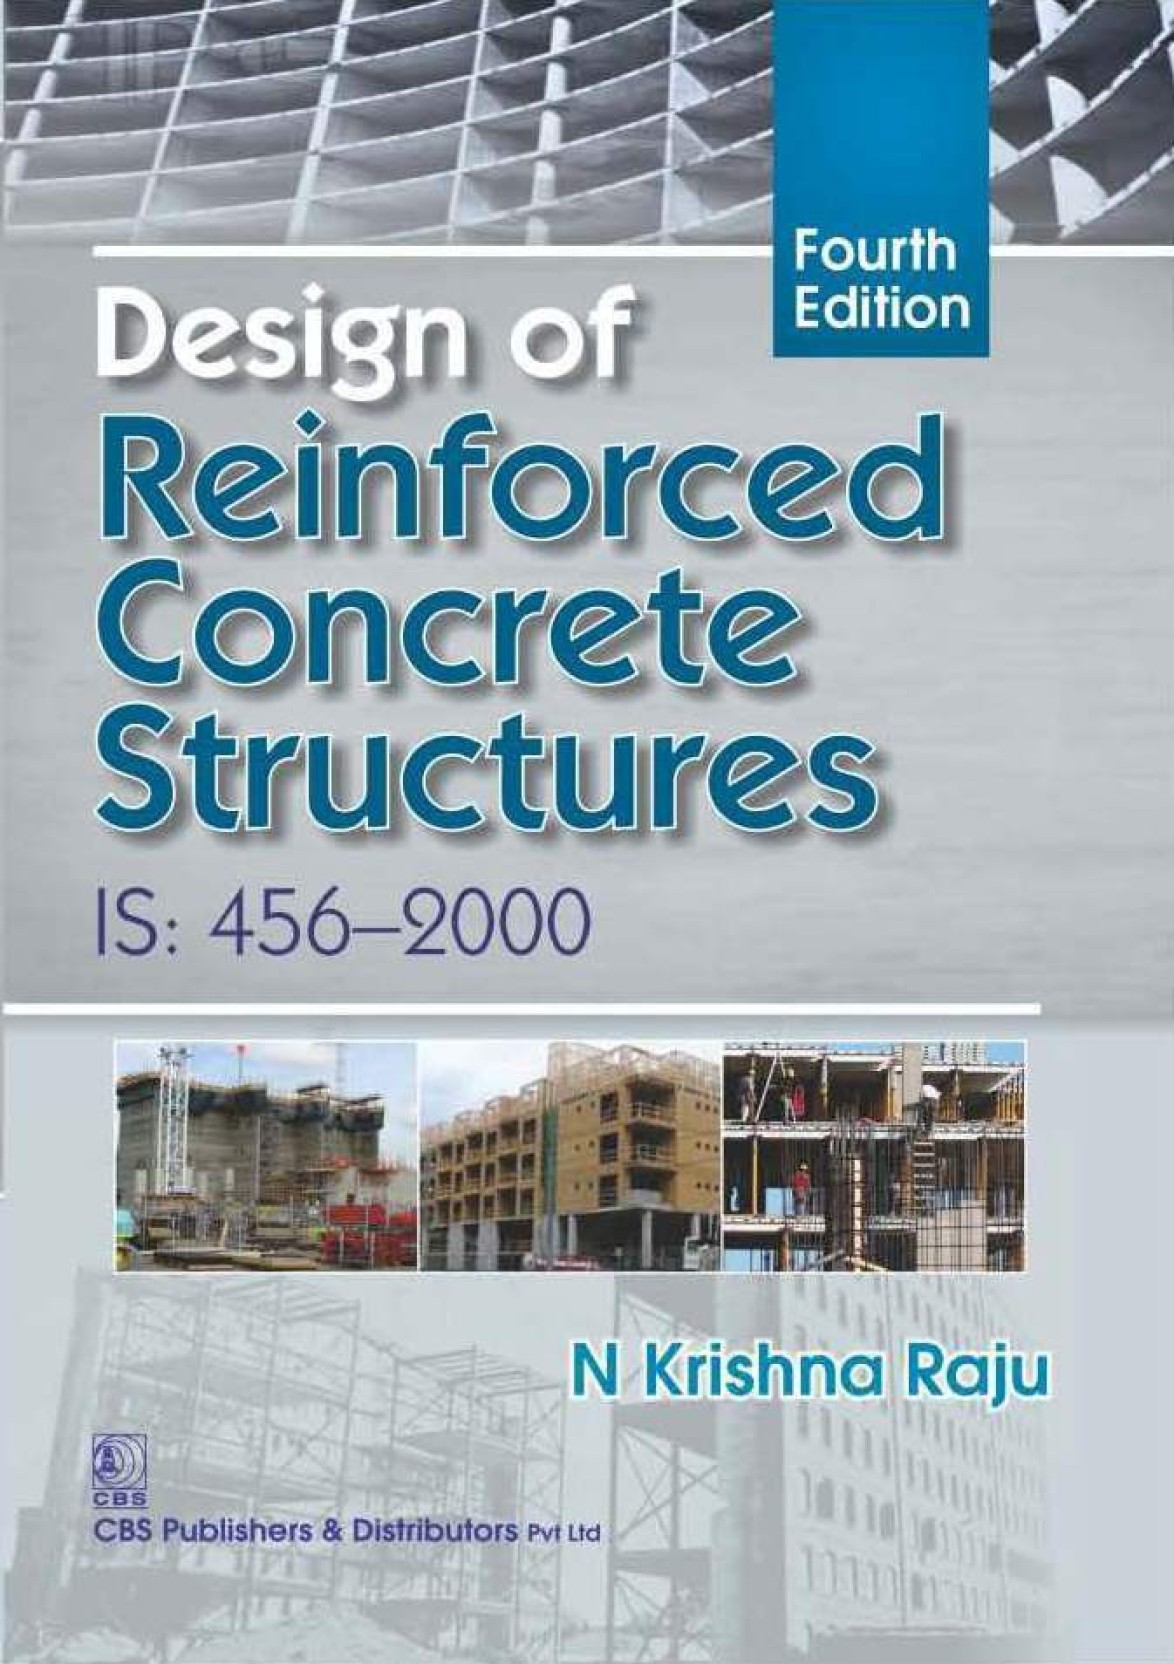 Design of Reinforced Concrete Structures (IS:456-2000). ADD TO CART